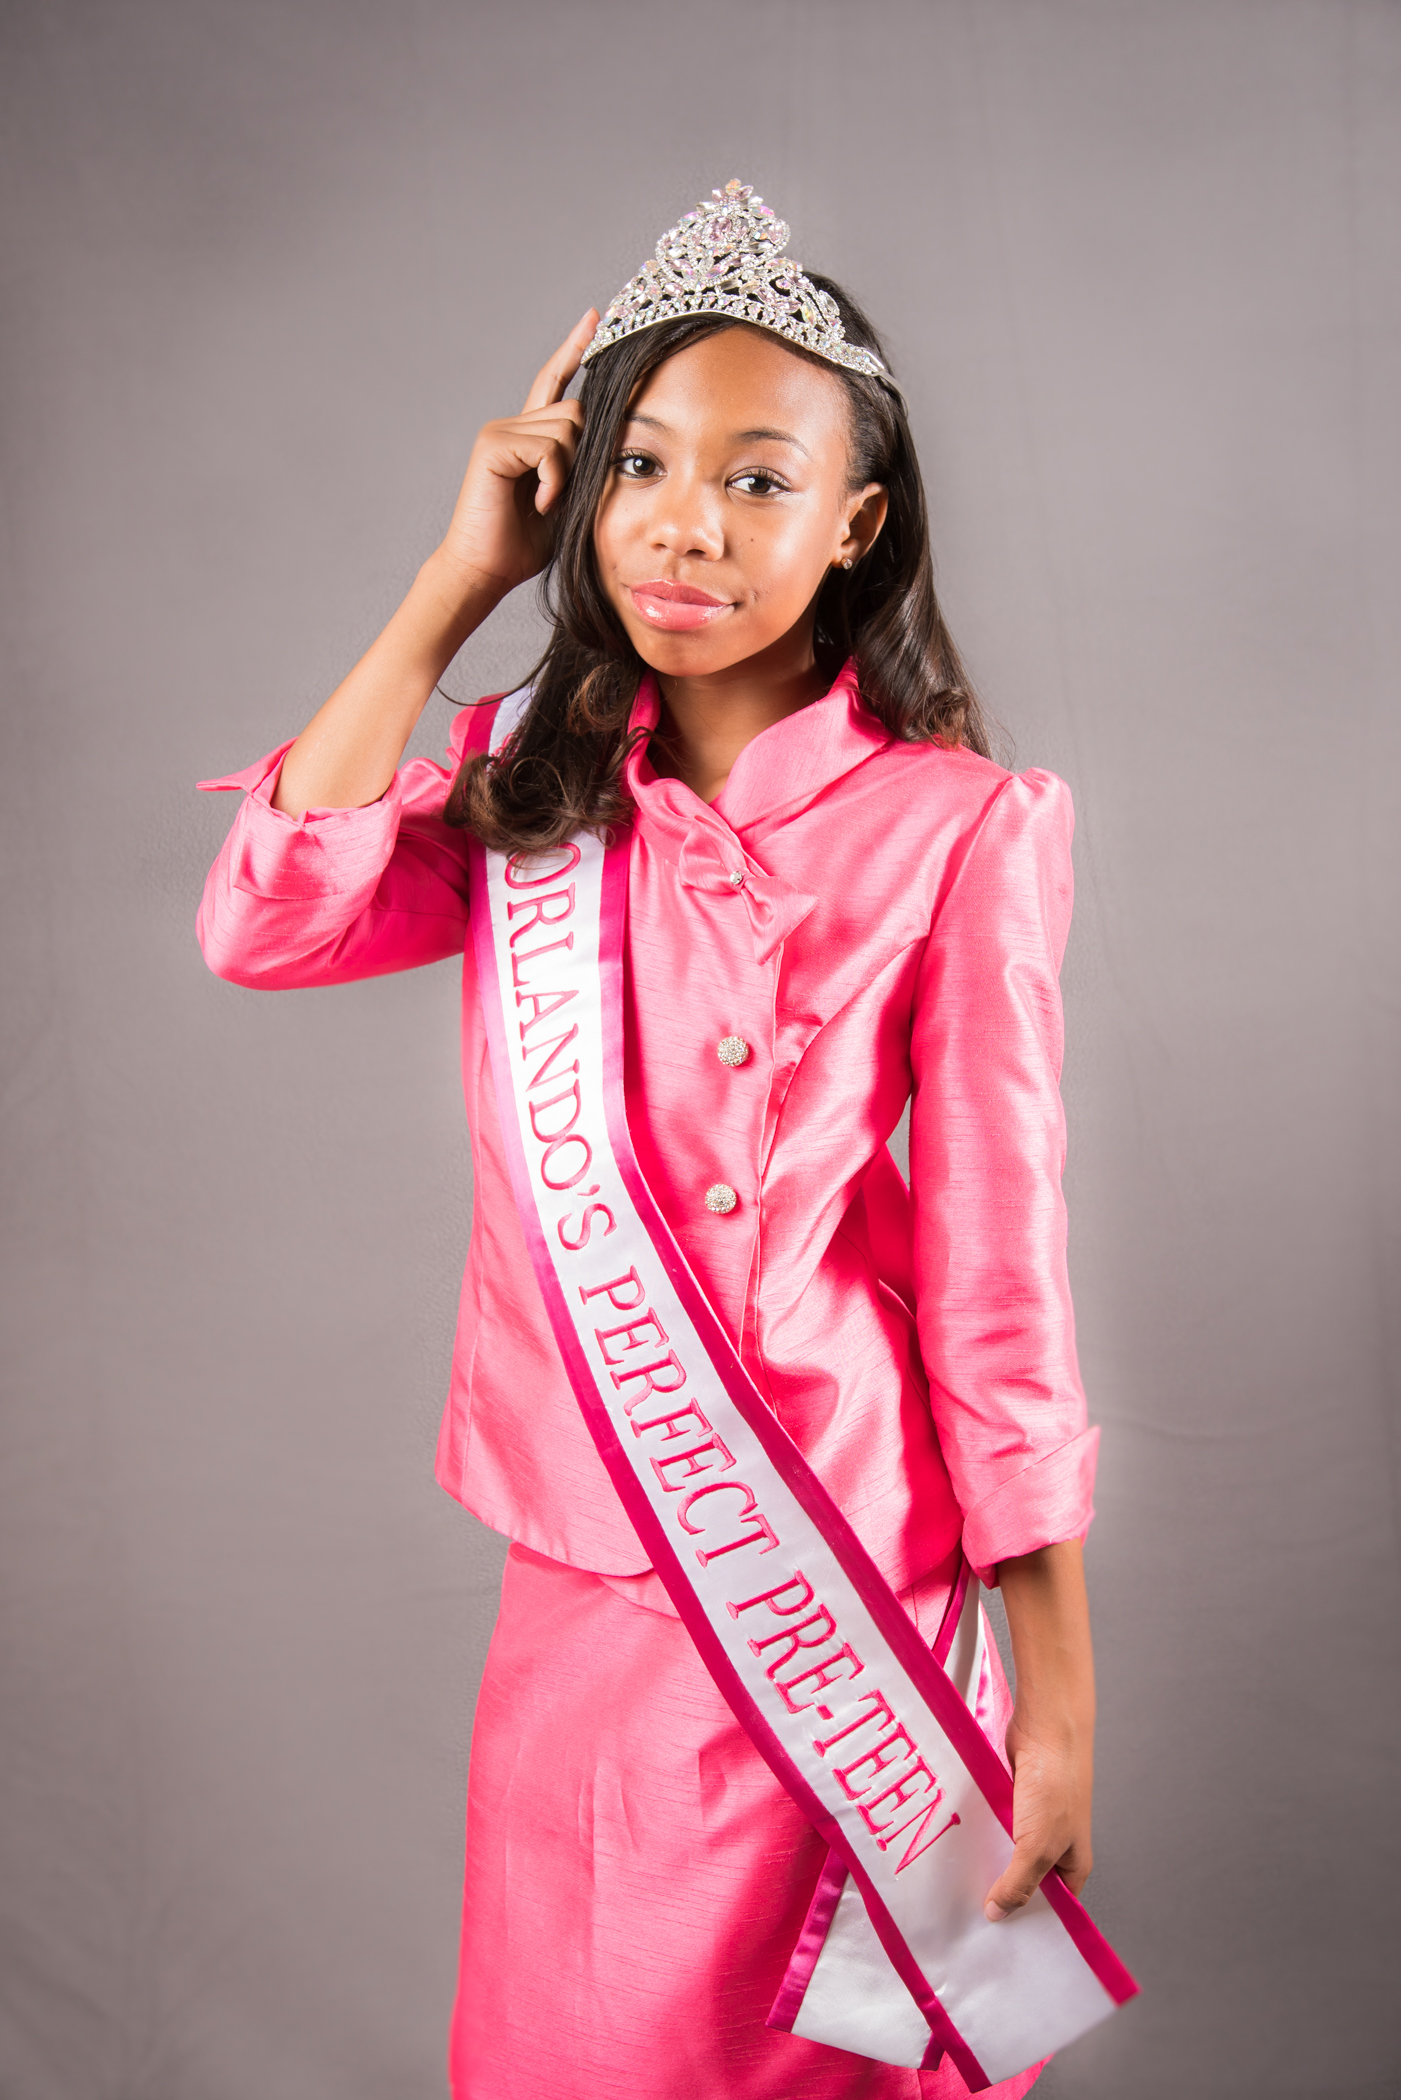 Worlds-perfect-pageant, Orlandos-perfect-pageant